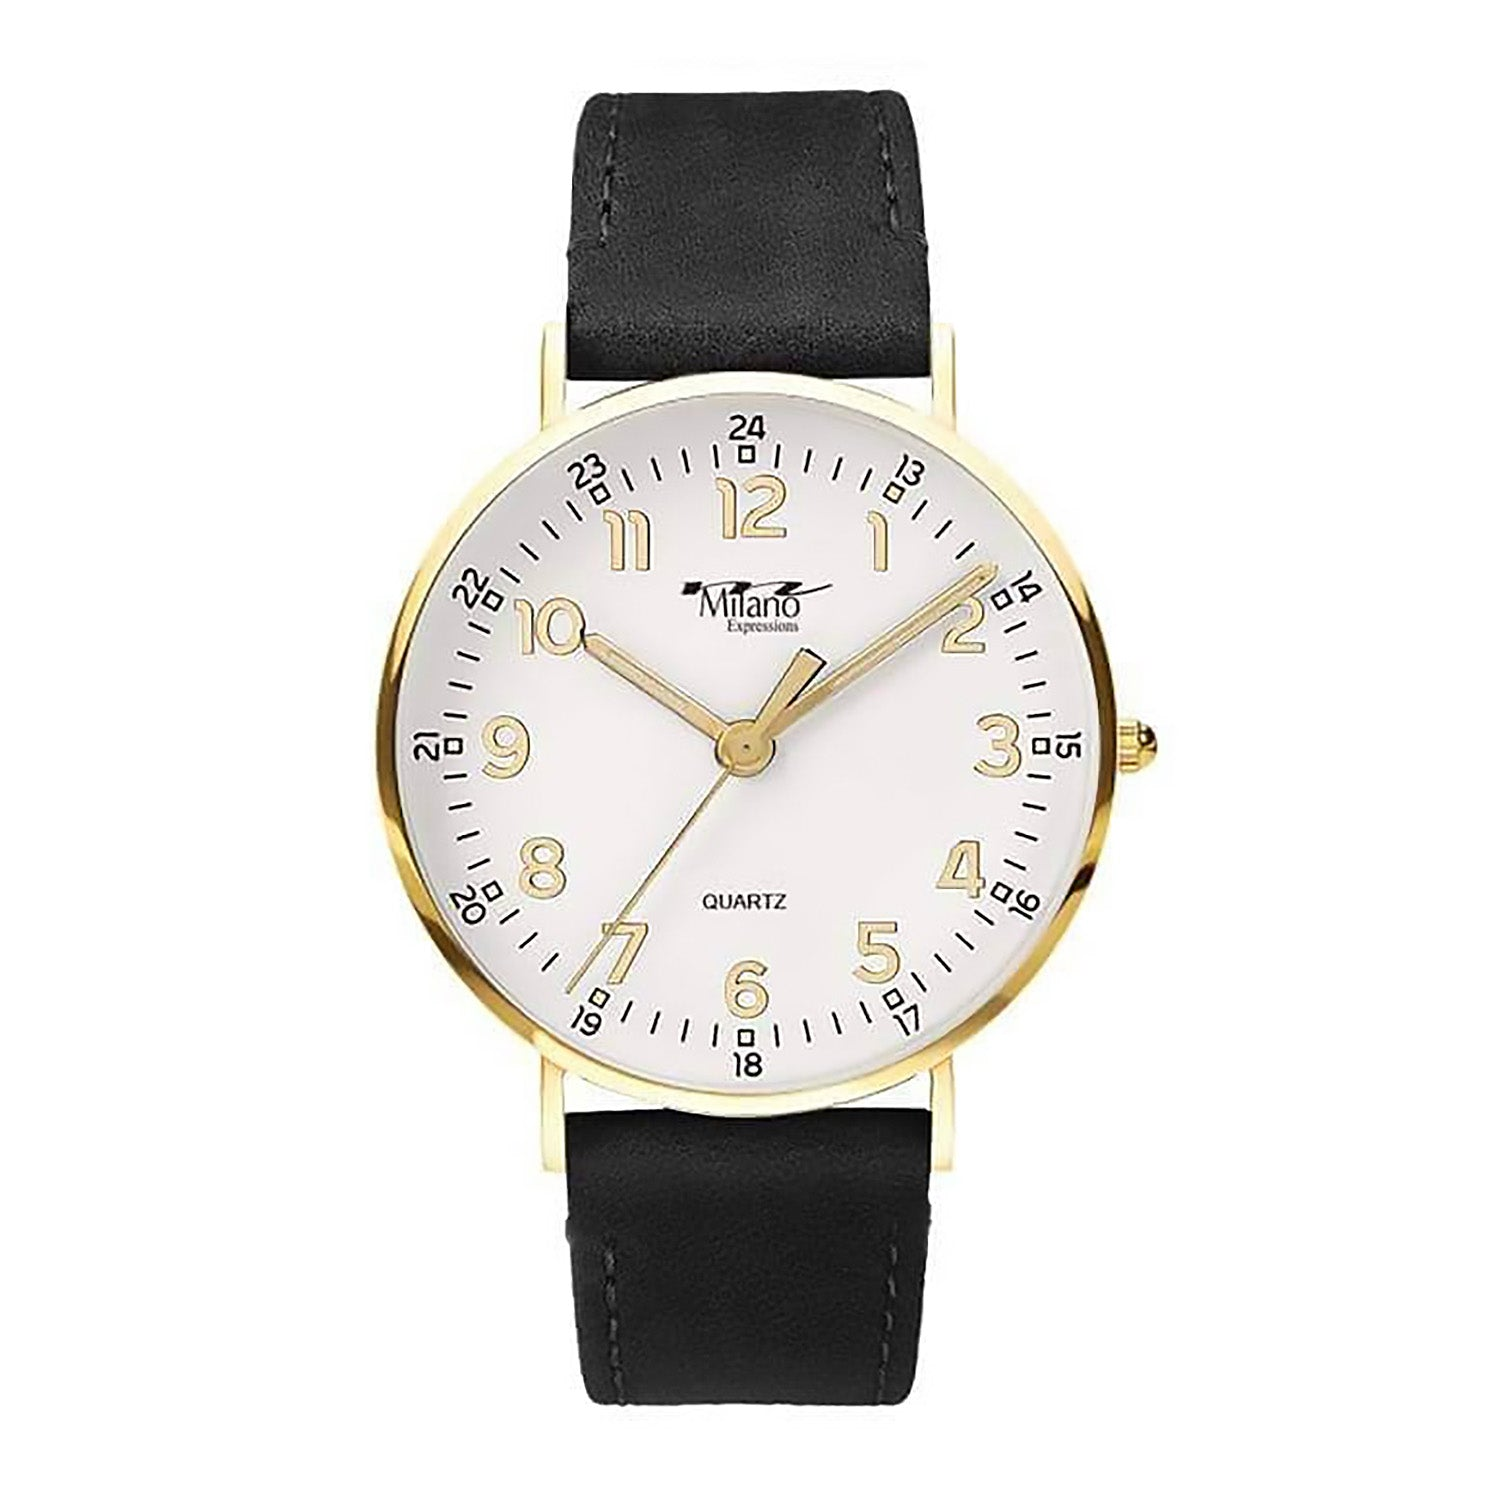 Tocero - Men's Watch Akcessoryz